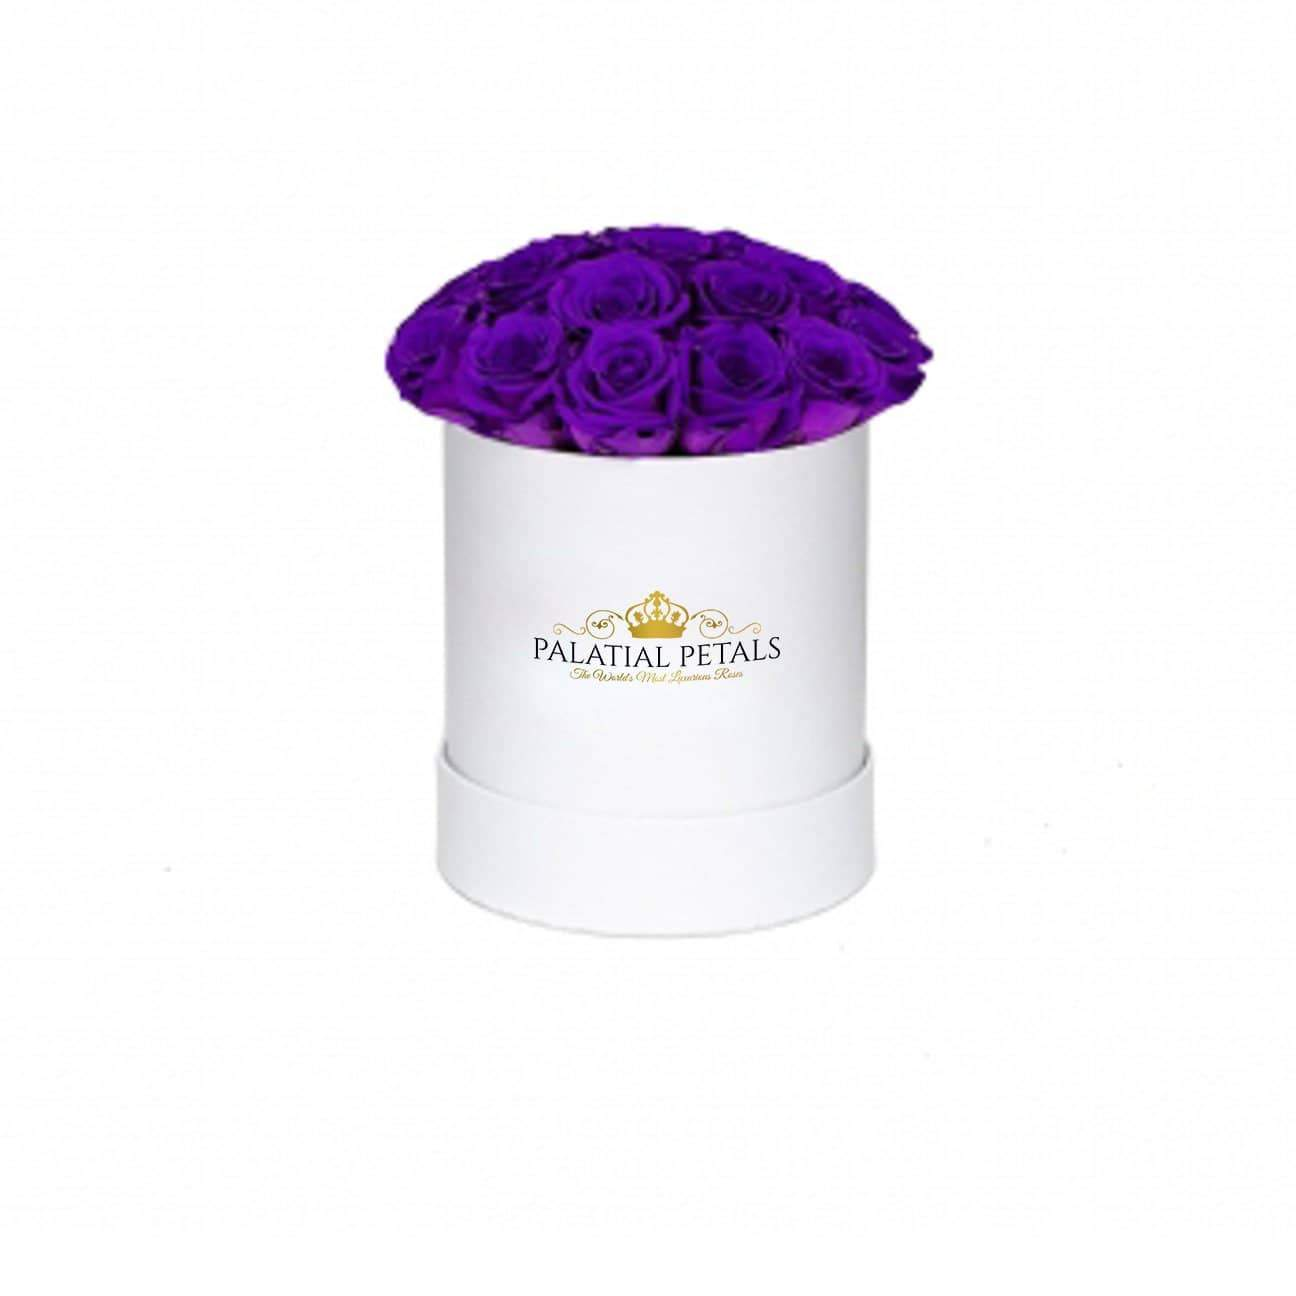 Purple Roses That Last A Year - Petite Rose Box - Palatial Petals